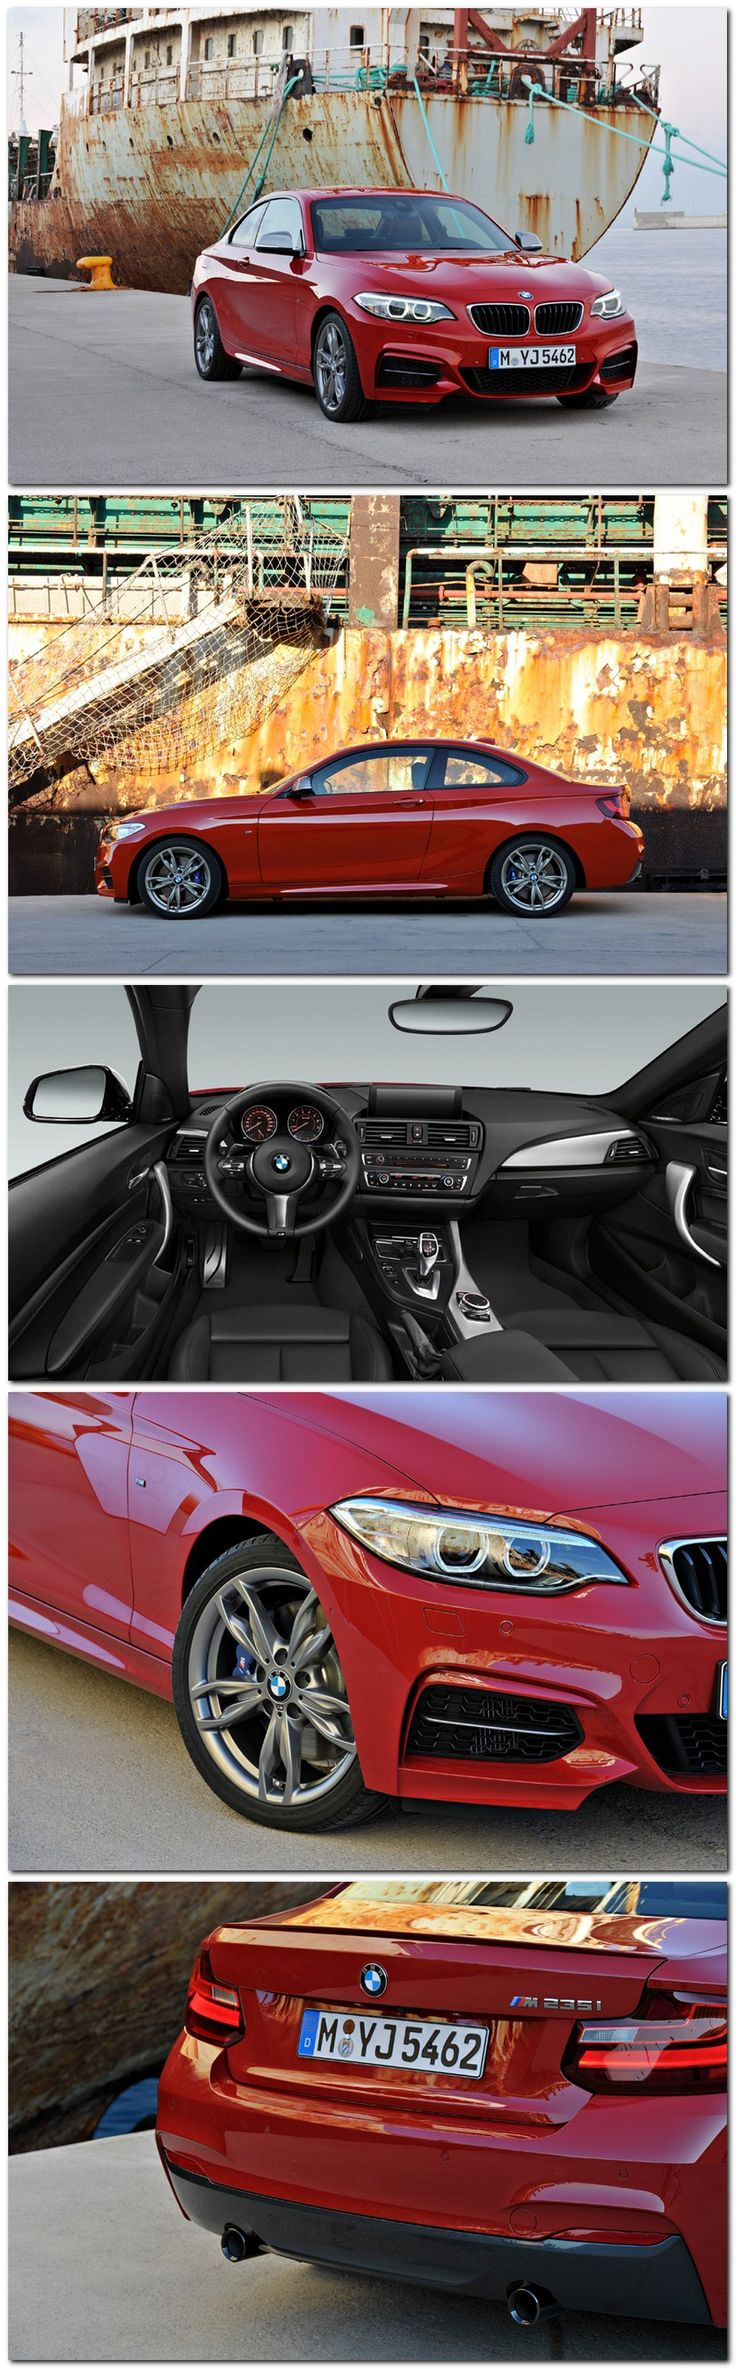 The BMW 2 Series Coupe  Earn income on the side to help pay for your own BMW.  Check out my page at http://tomhandy.co #bmw